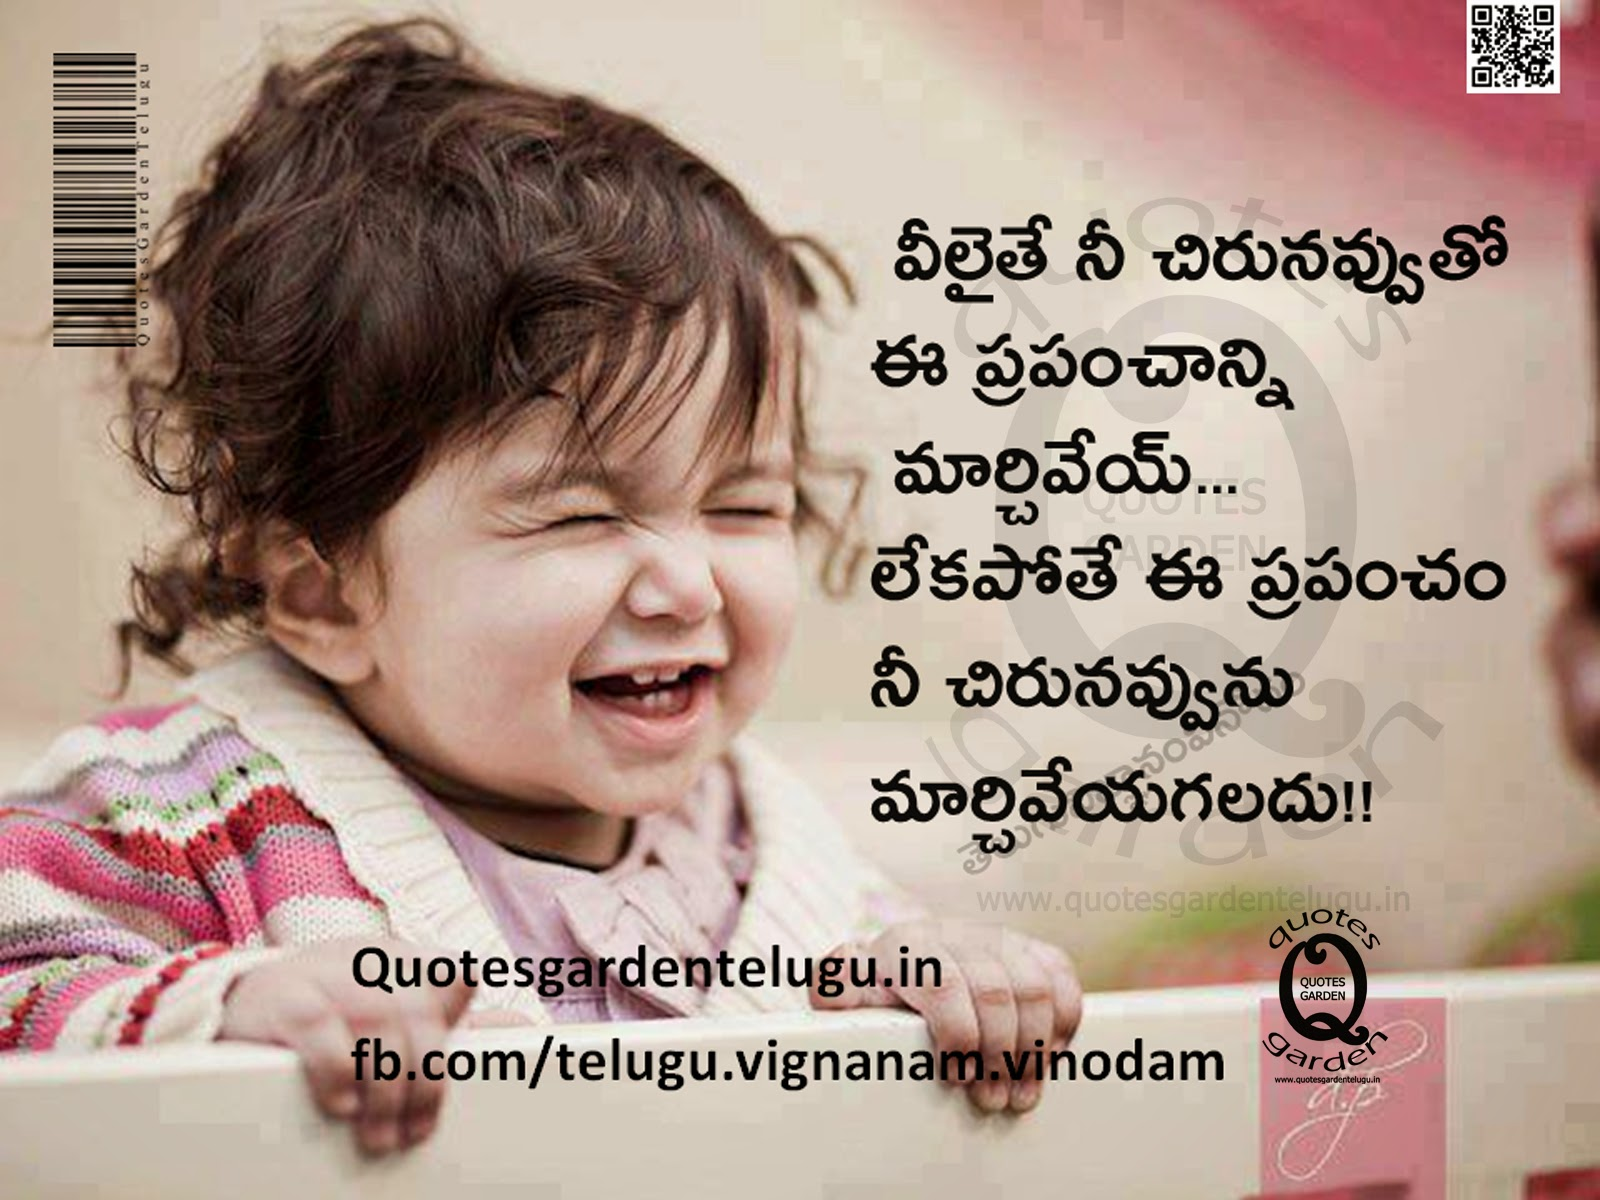 Telugu Good morning quotations with Cute Wallpapers